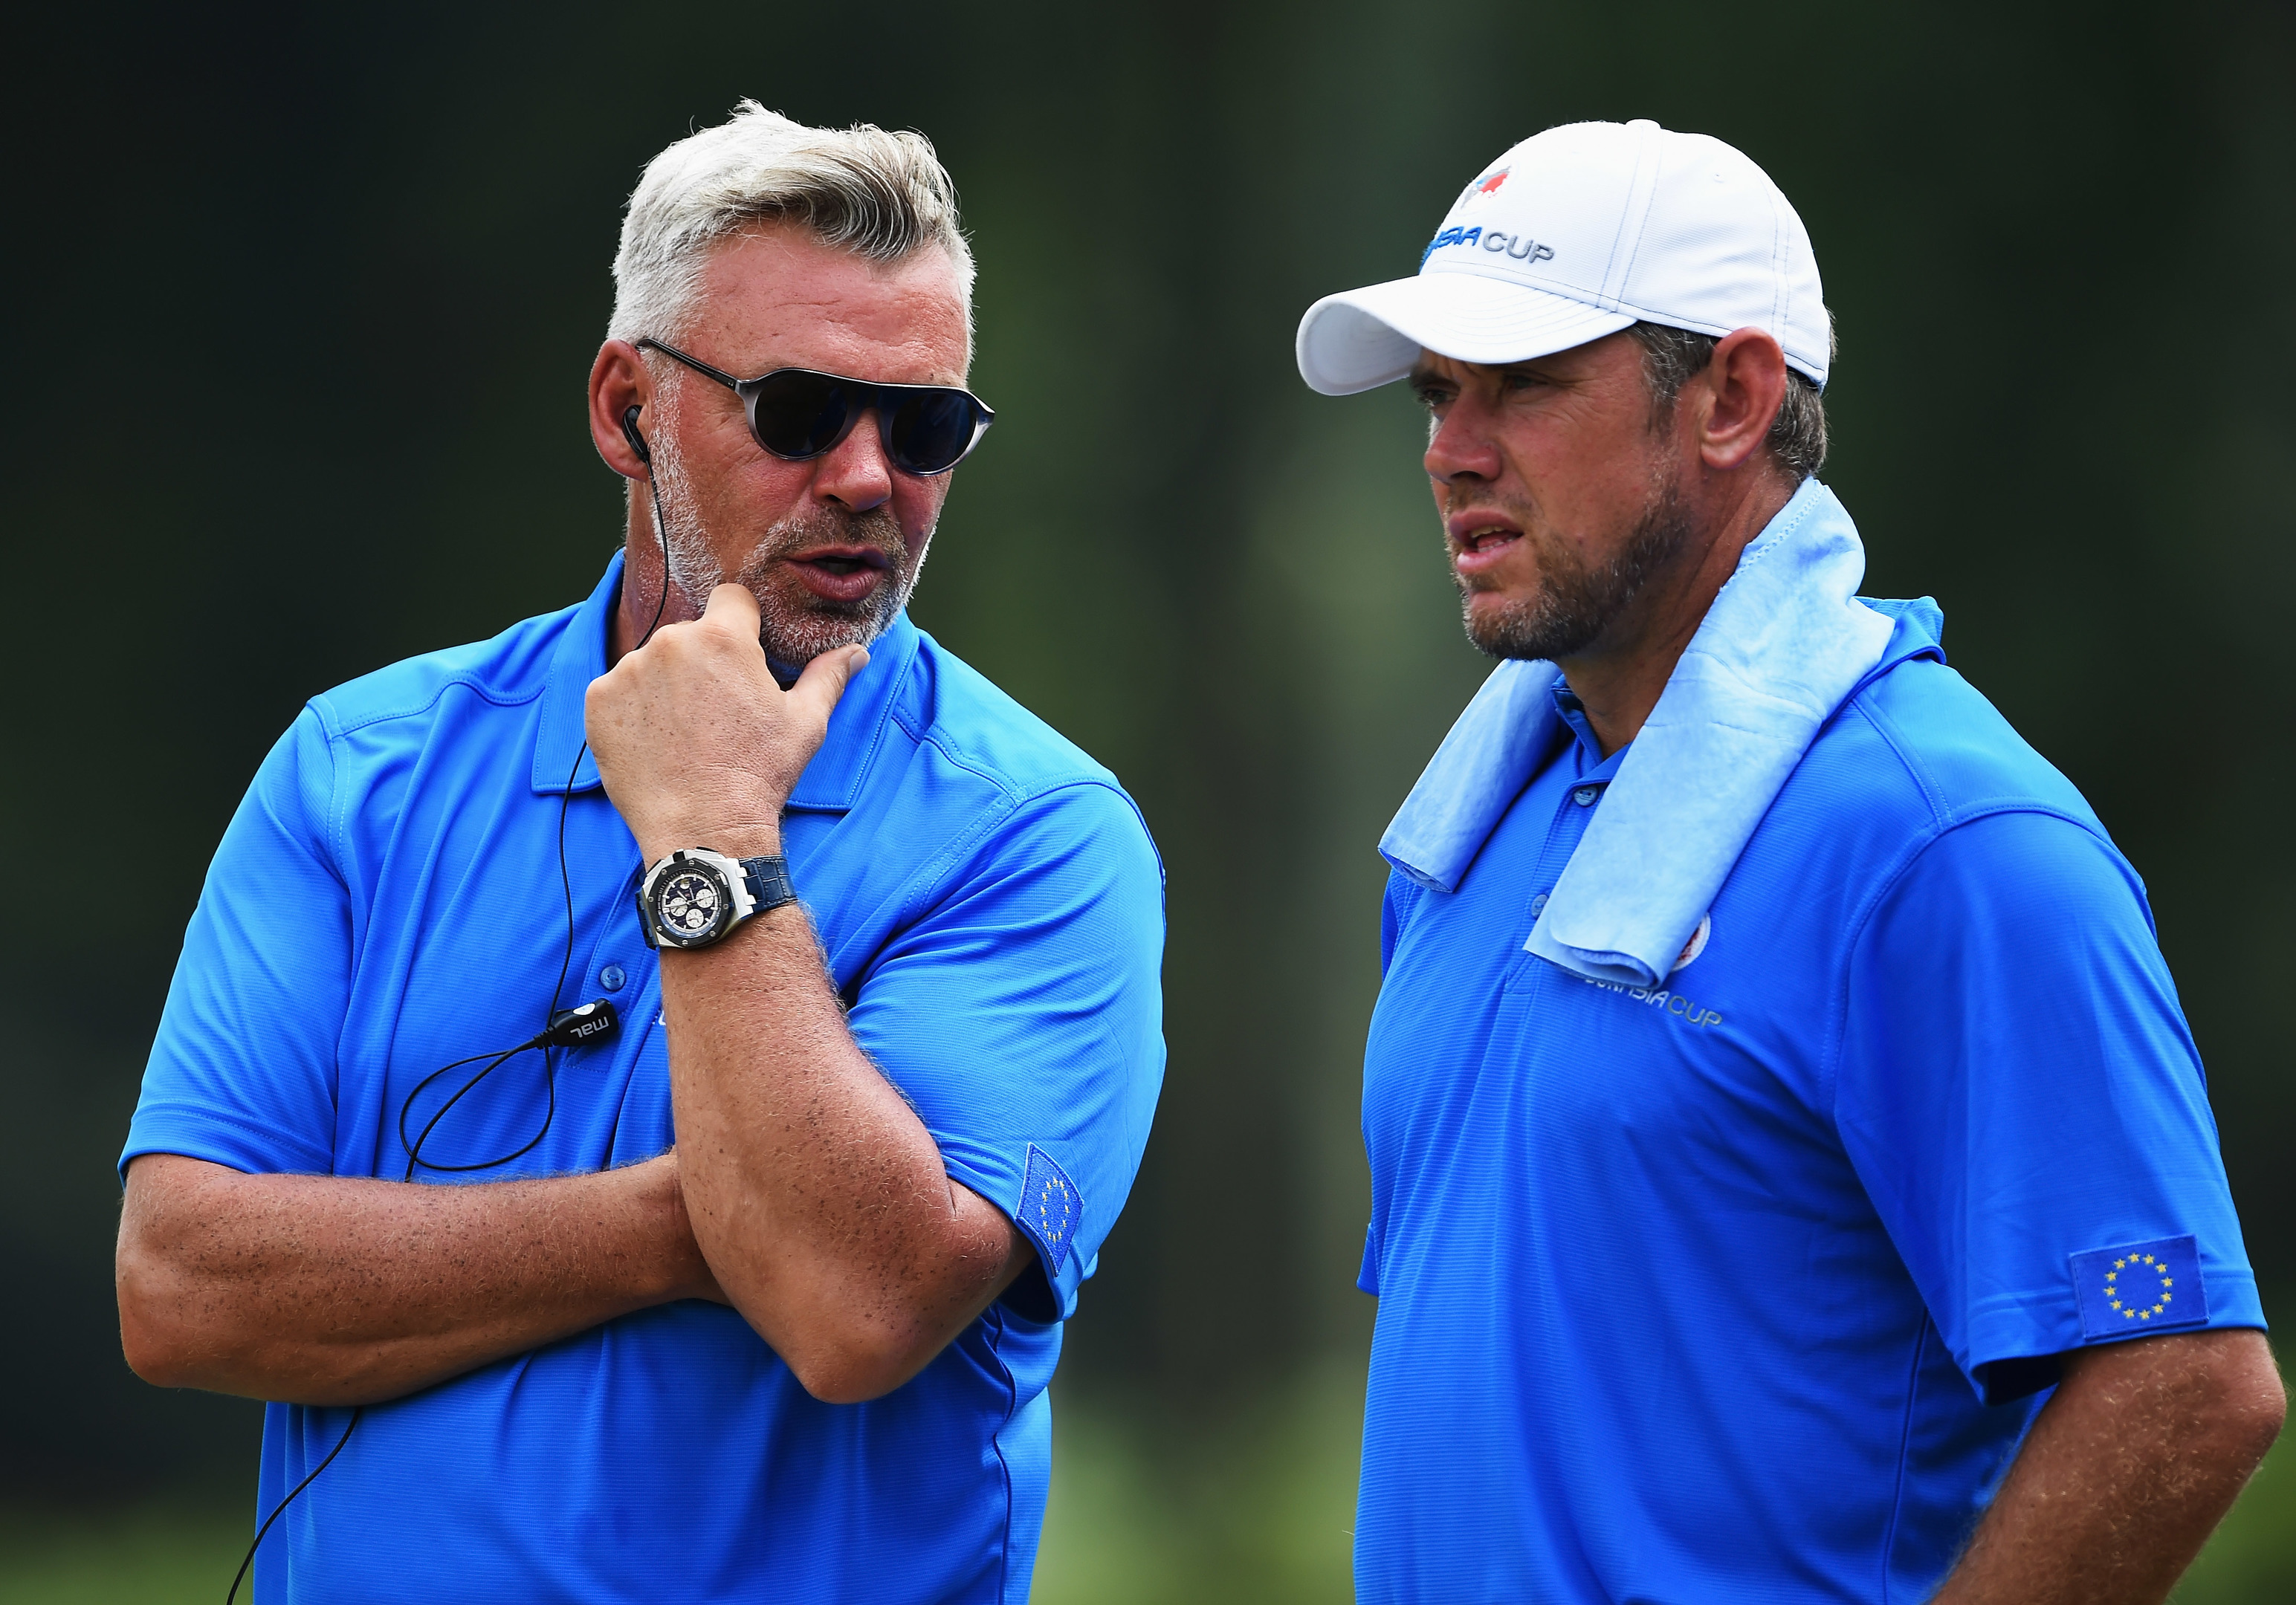 Thick as thieves - Darren Clarke and Lee Westwood.